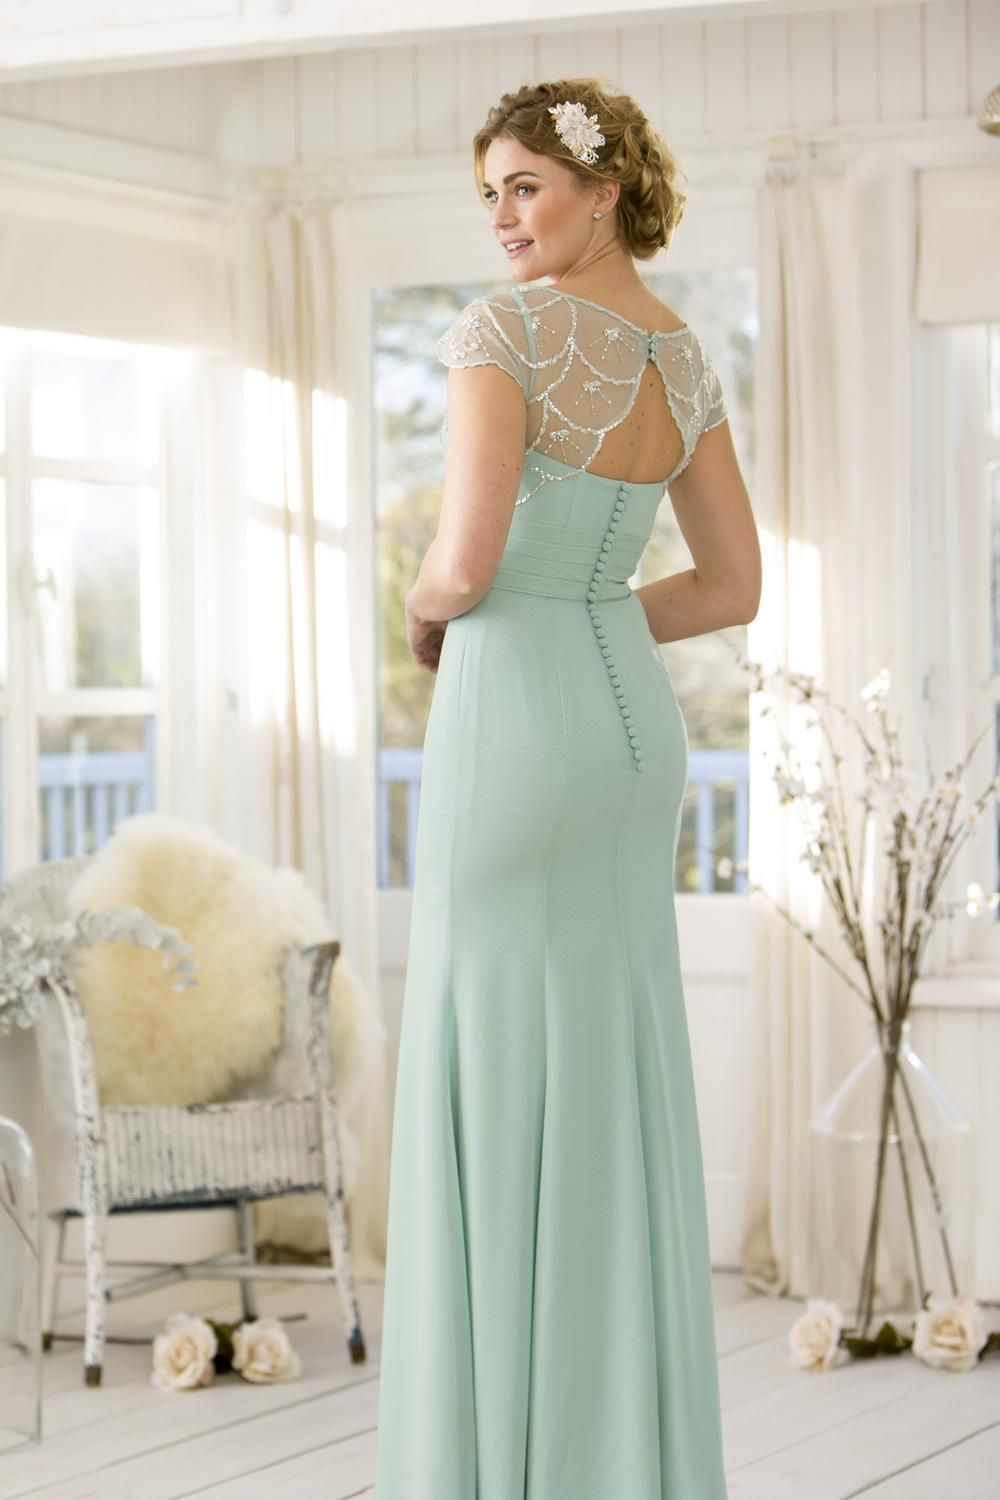 Pin von Ianite auf Prom Aesthetic- Mint/Light Green | Pinterest